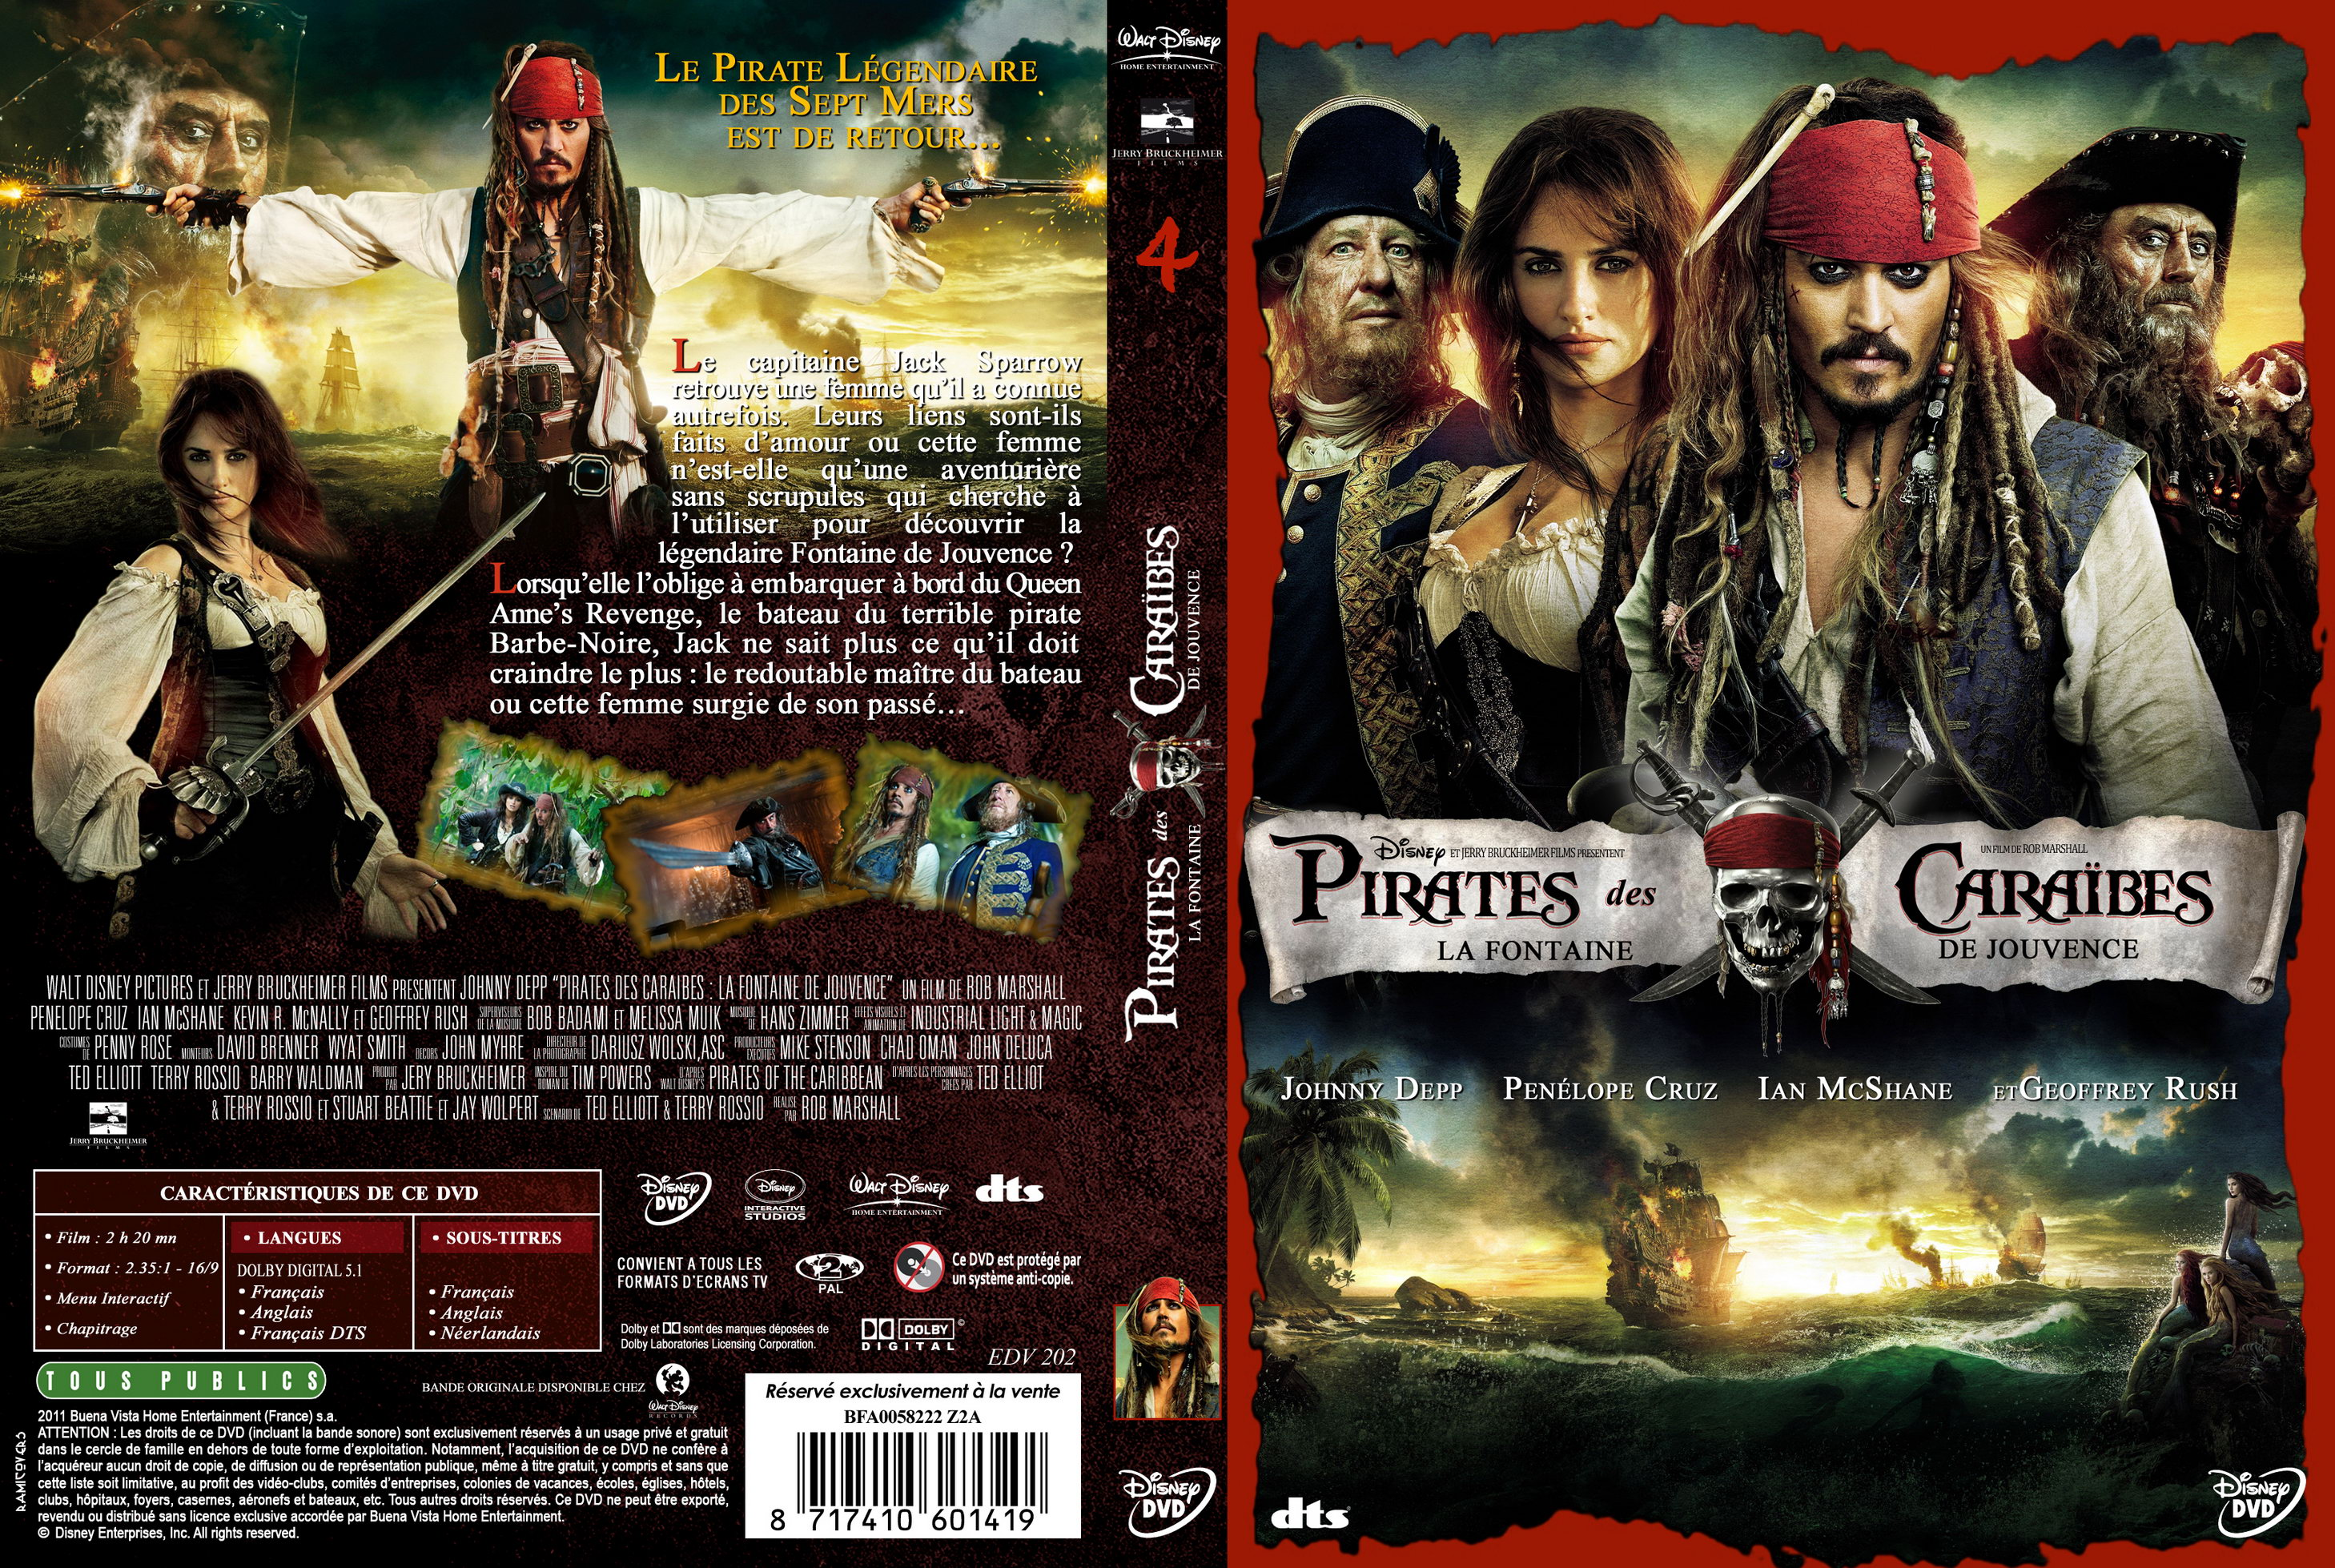 Version Porno des Pirates des Carabes - ruepornocom